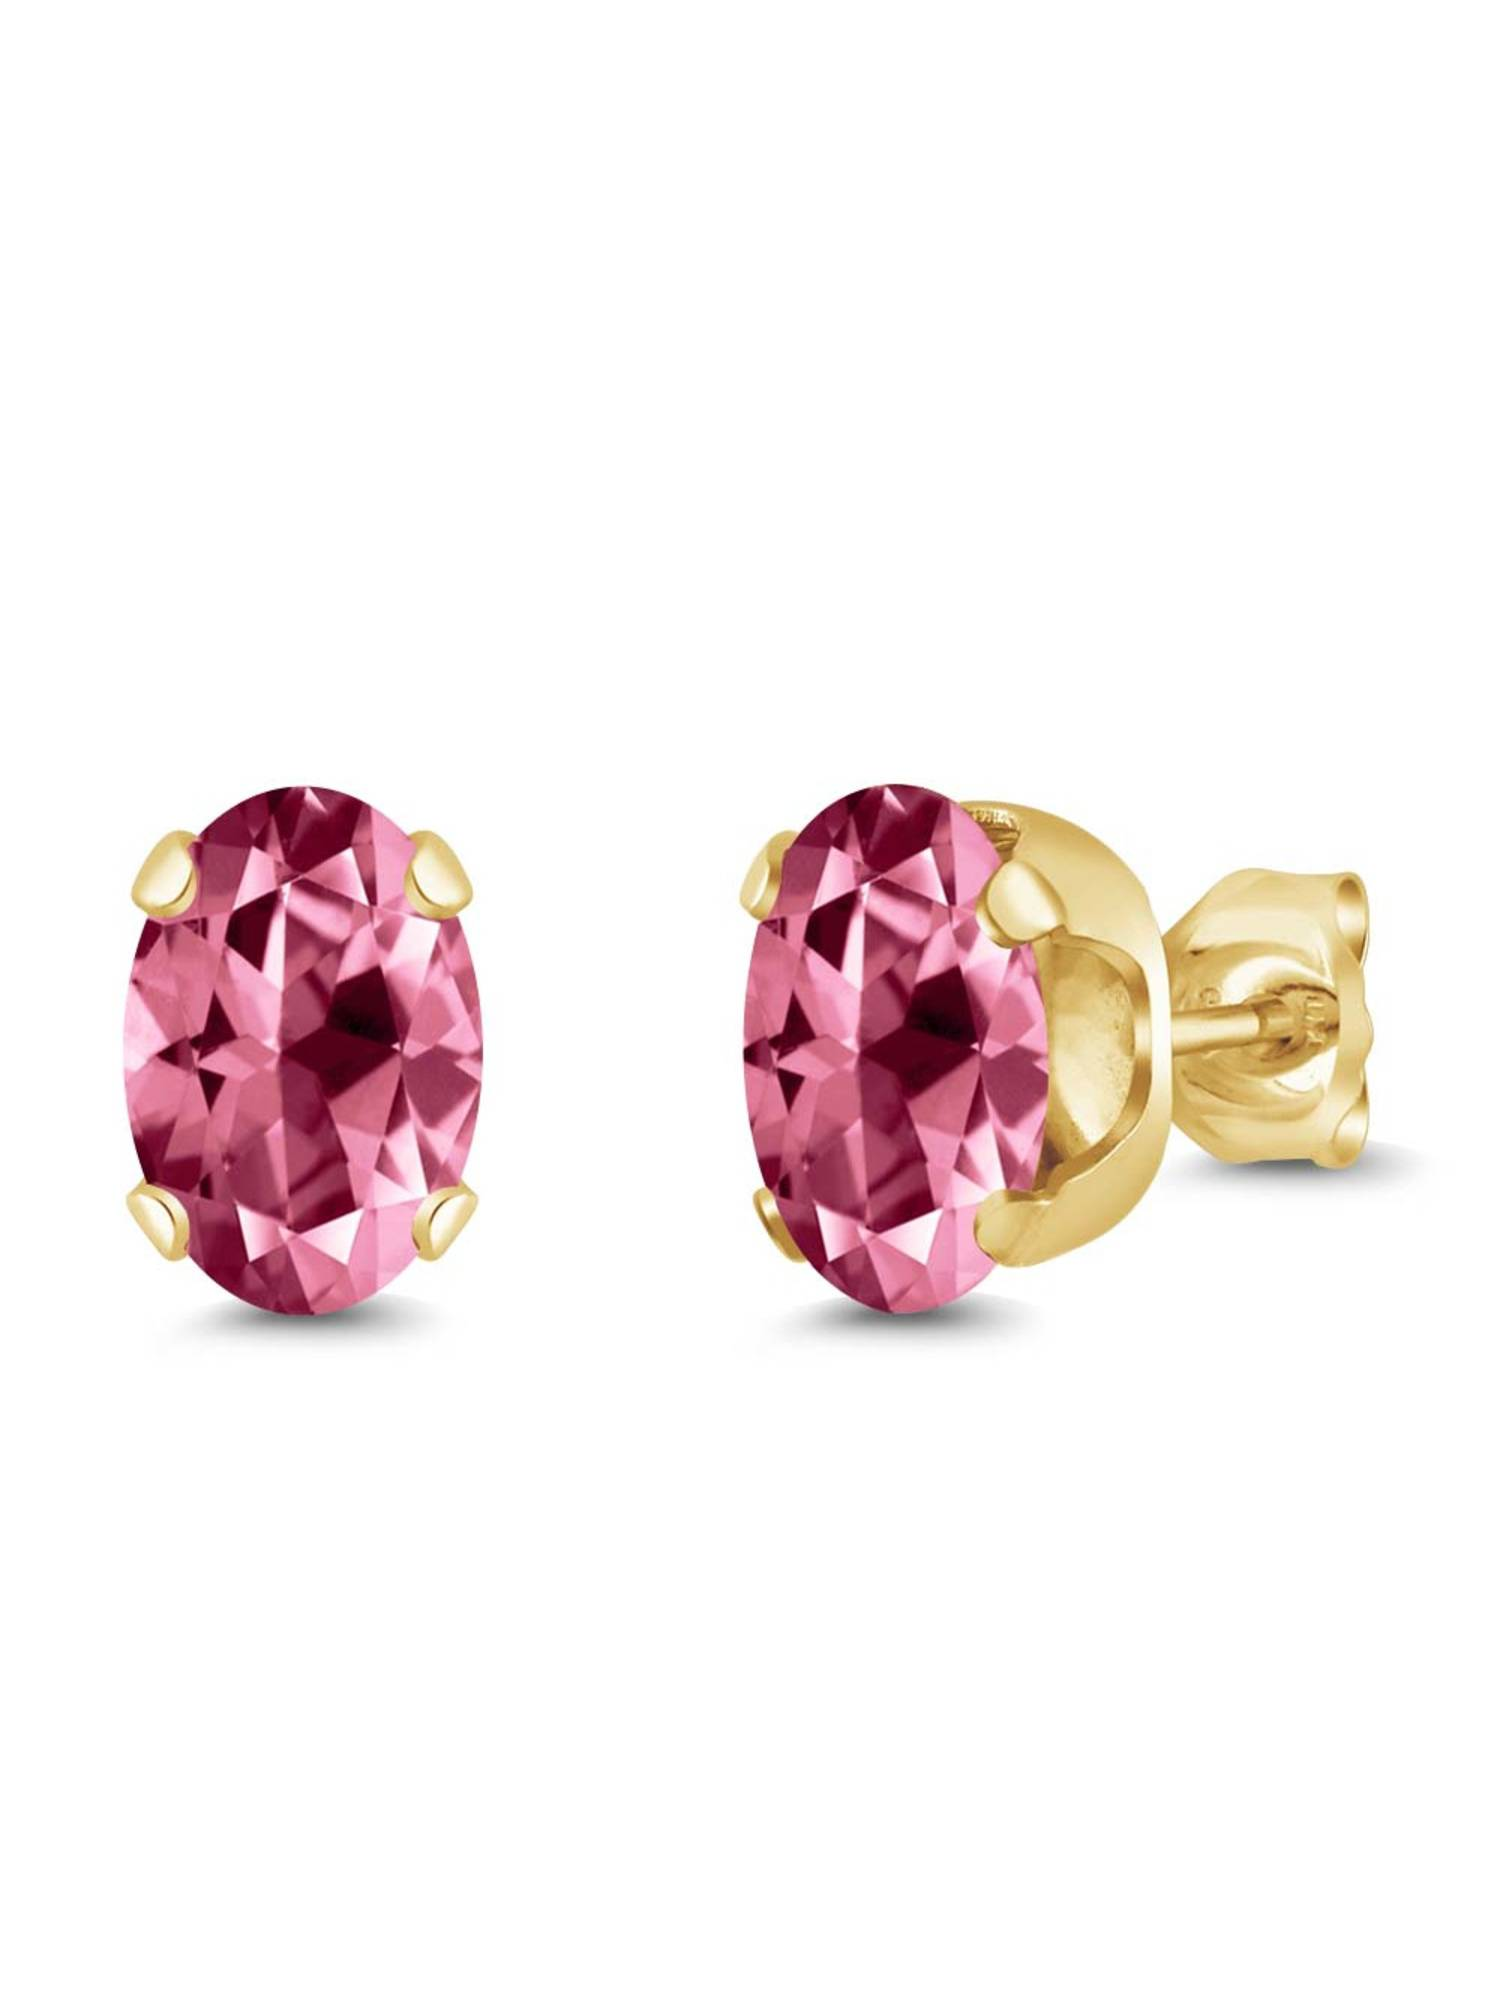 925 Yellow Gold Plated Silver Earrings Set with Pink Topaz from Swarvoski by